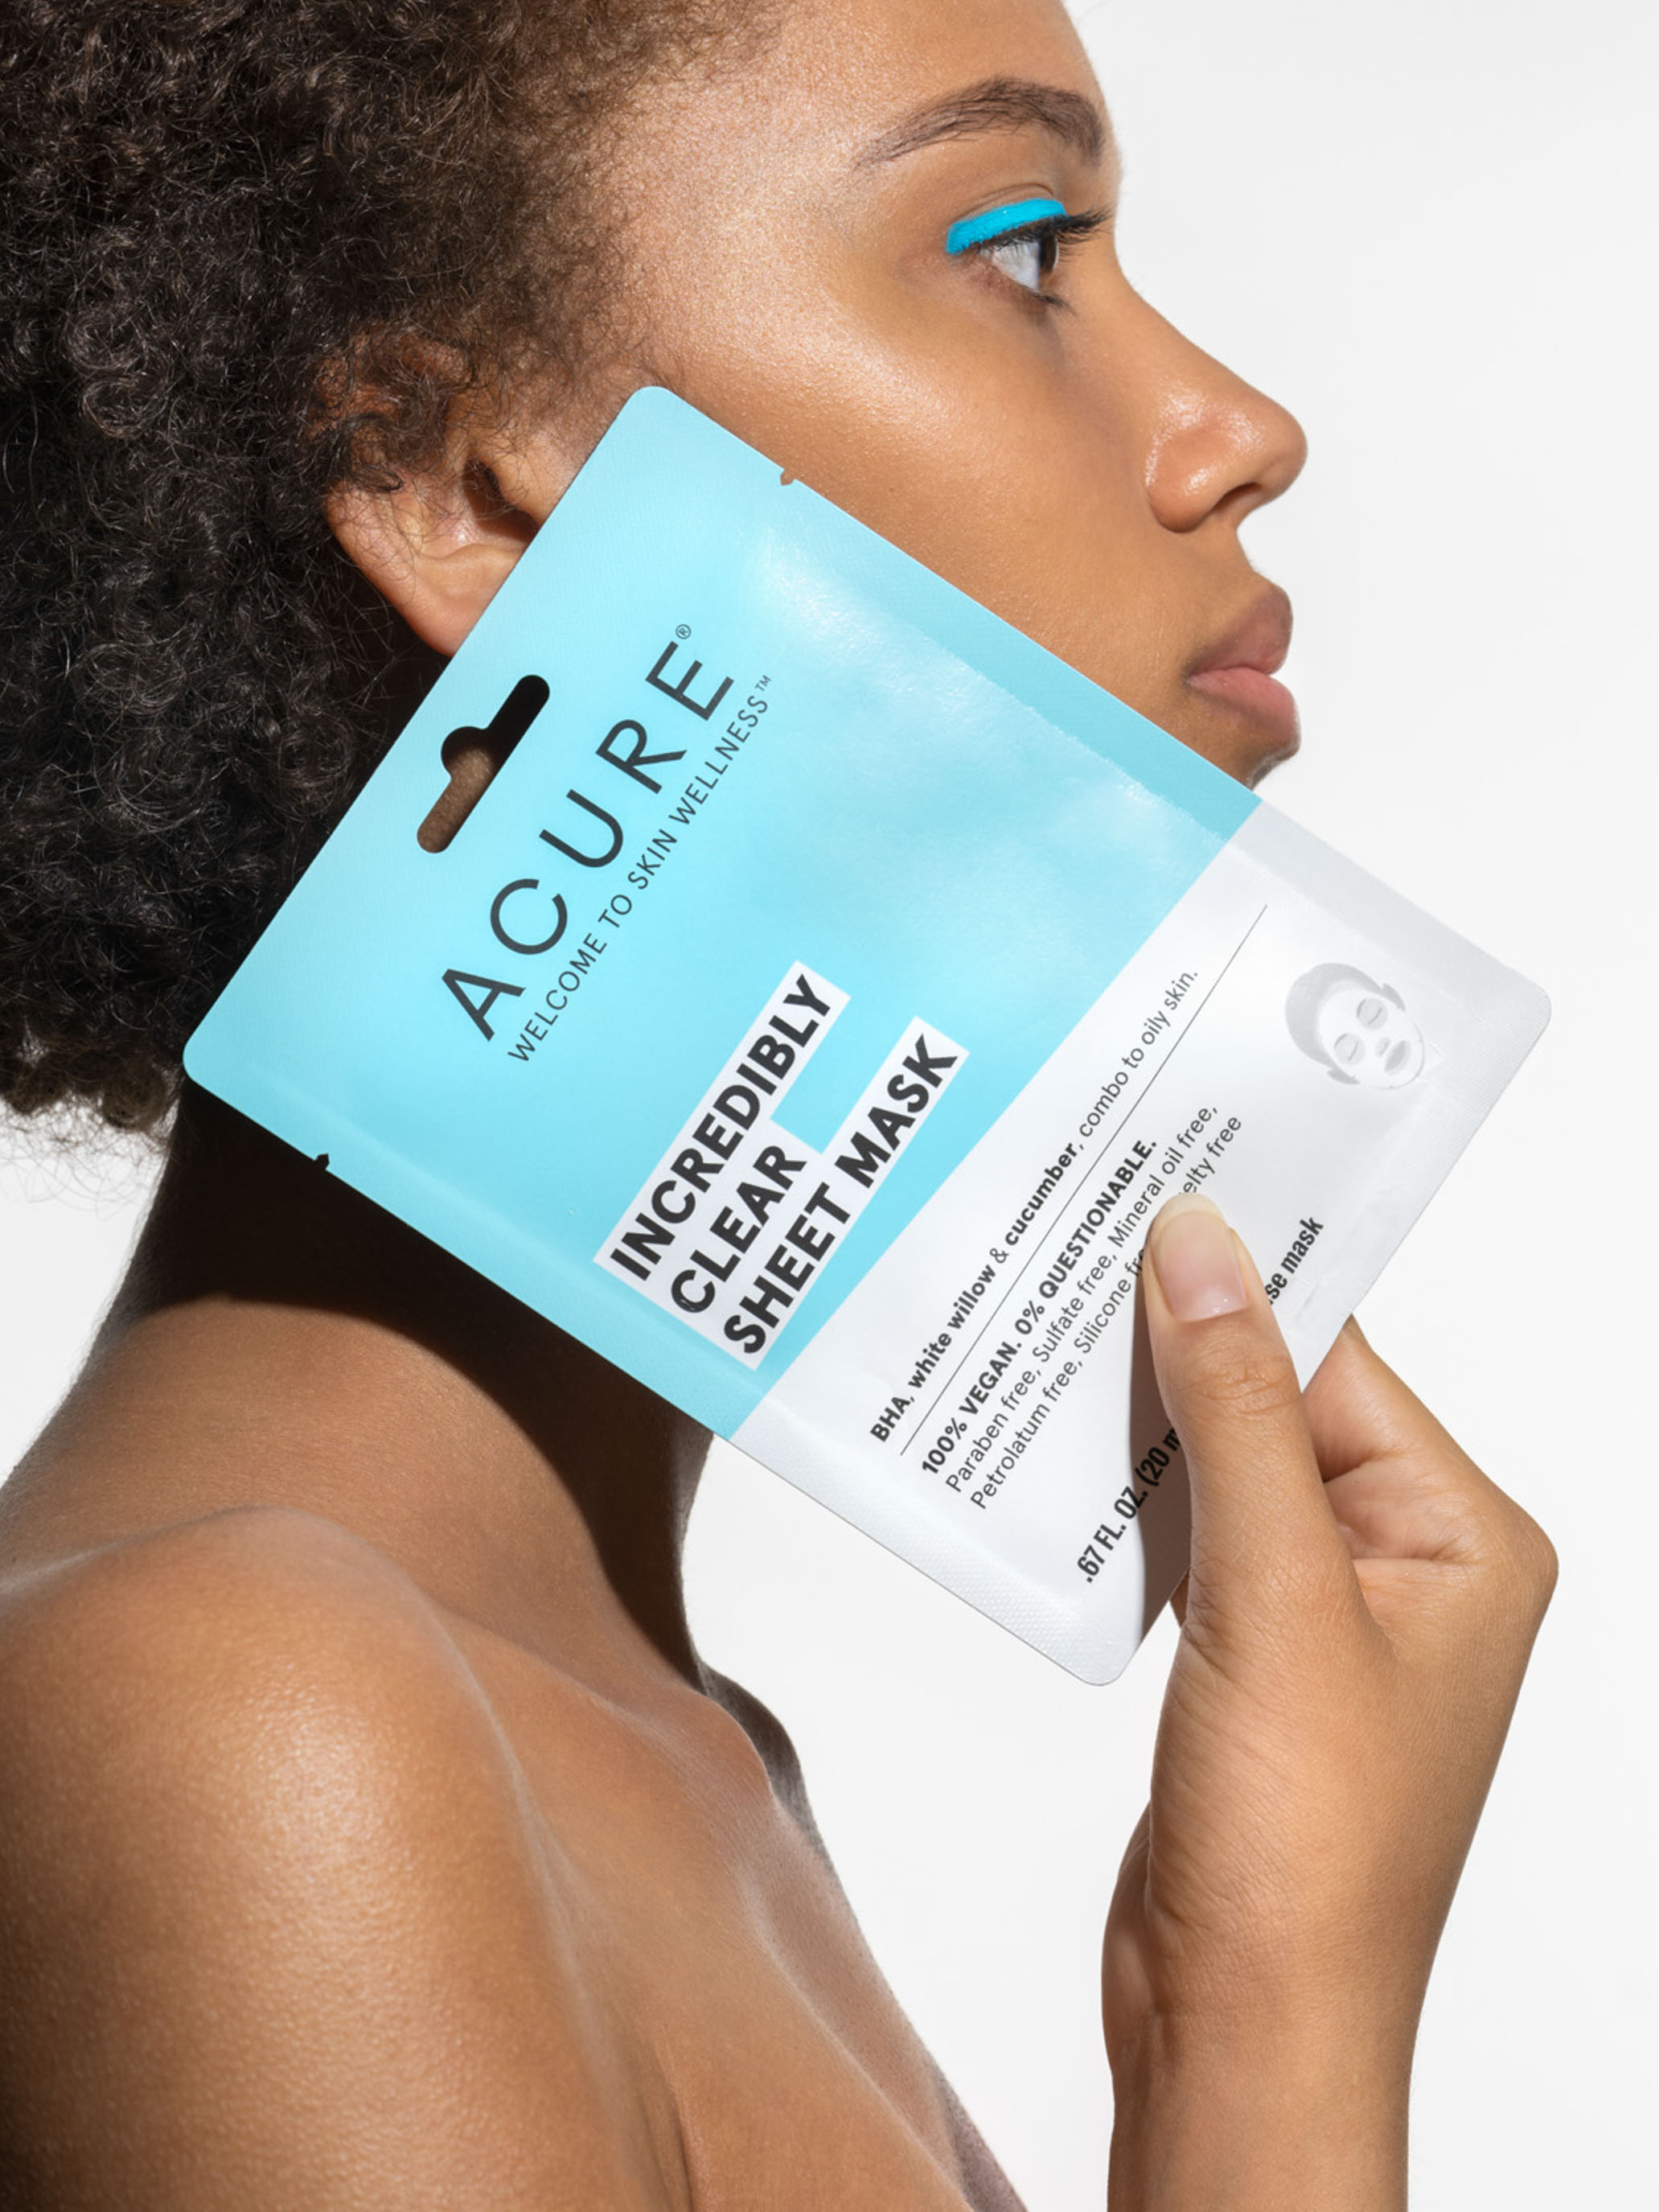 STAN Acure Beauty Portrait with Incredibly Clear Sheet Mask